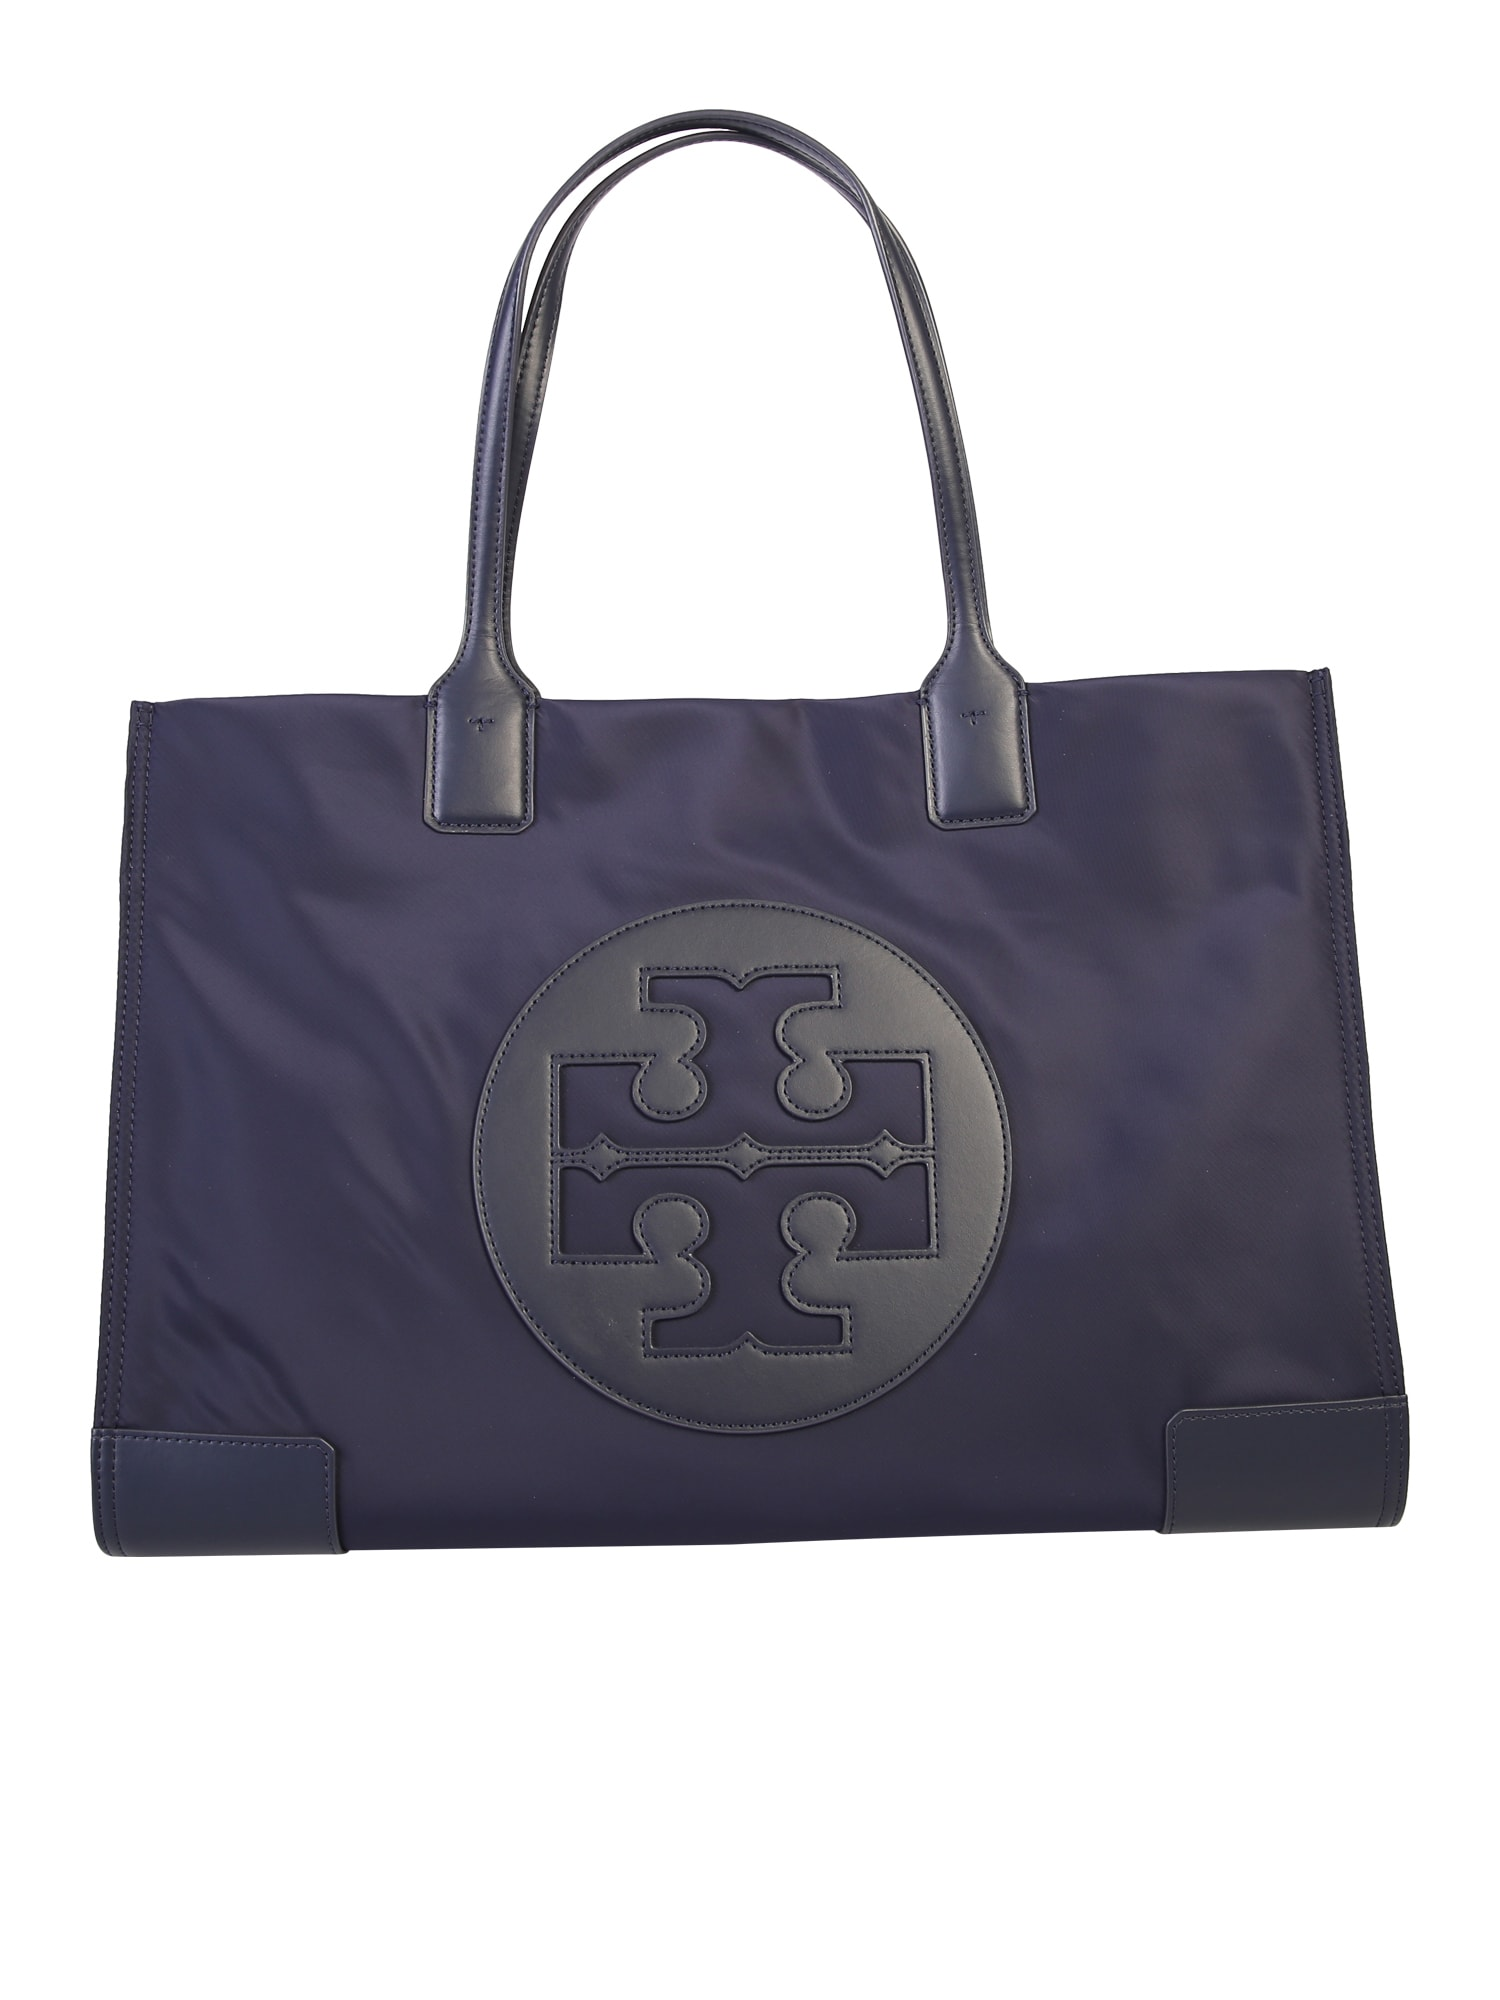 Tory Burch Ella Bag